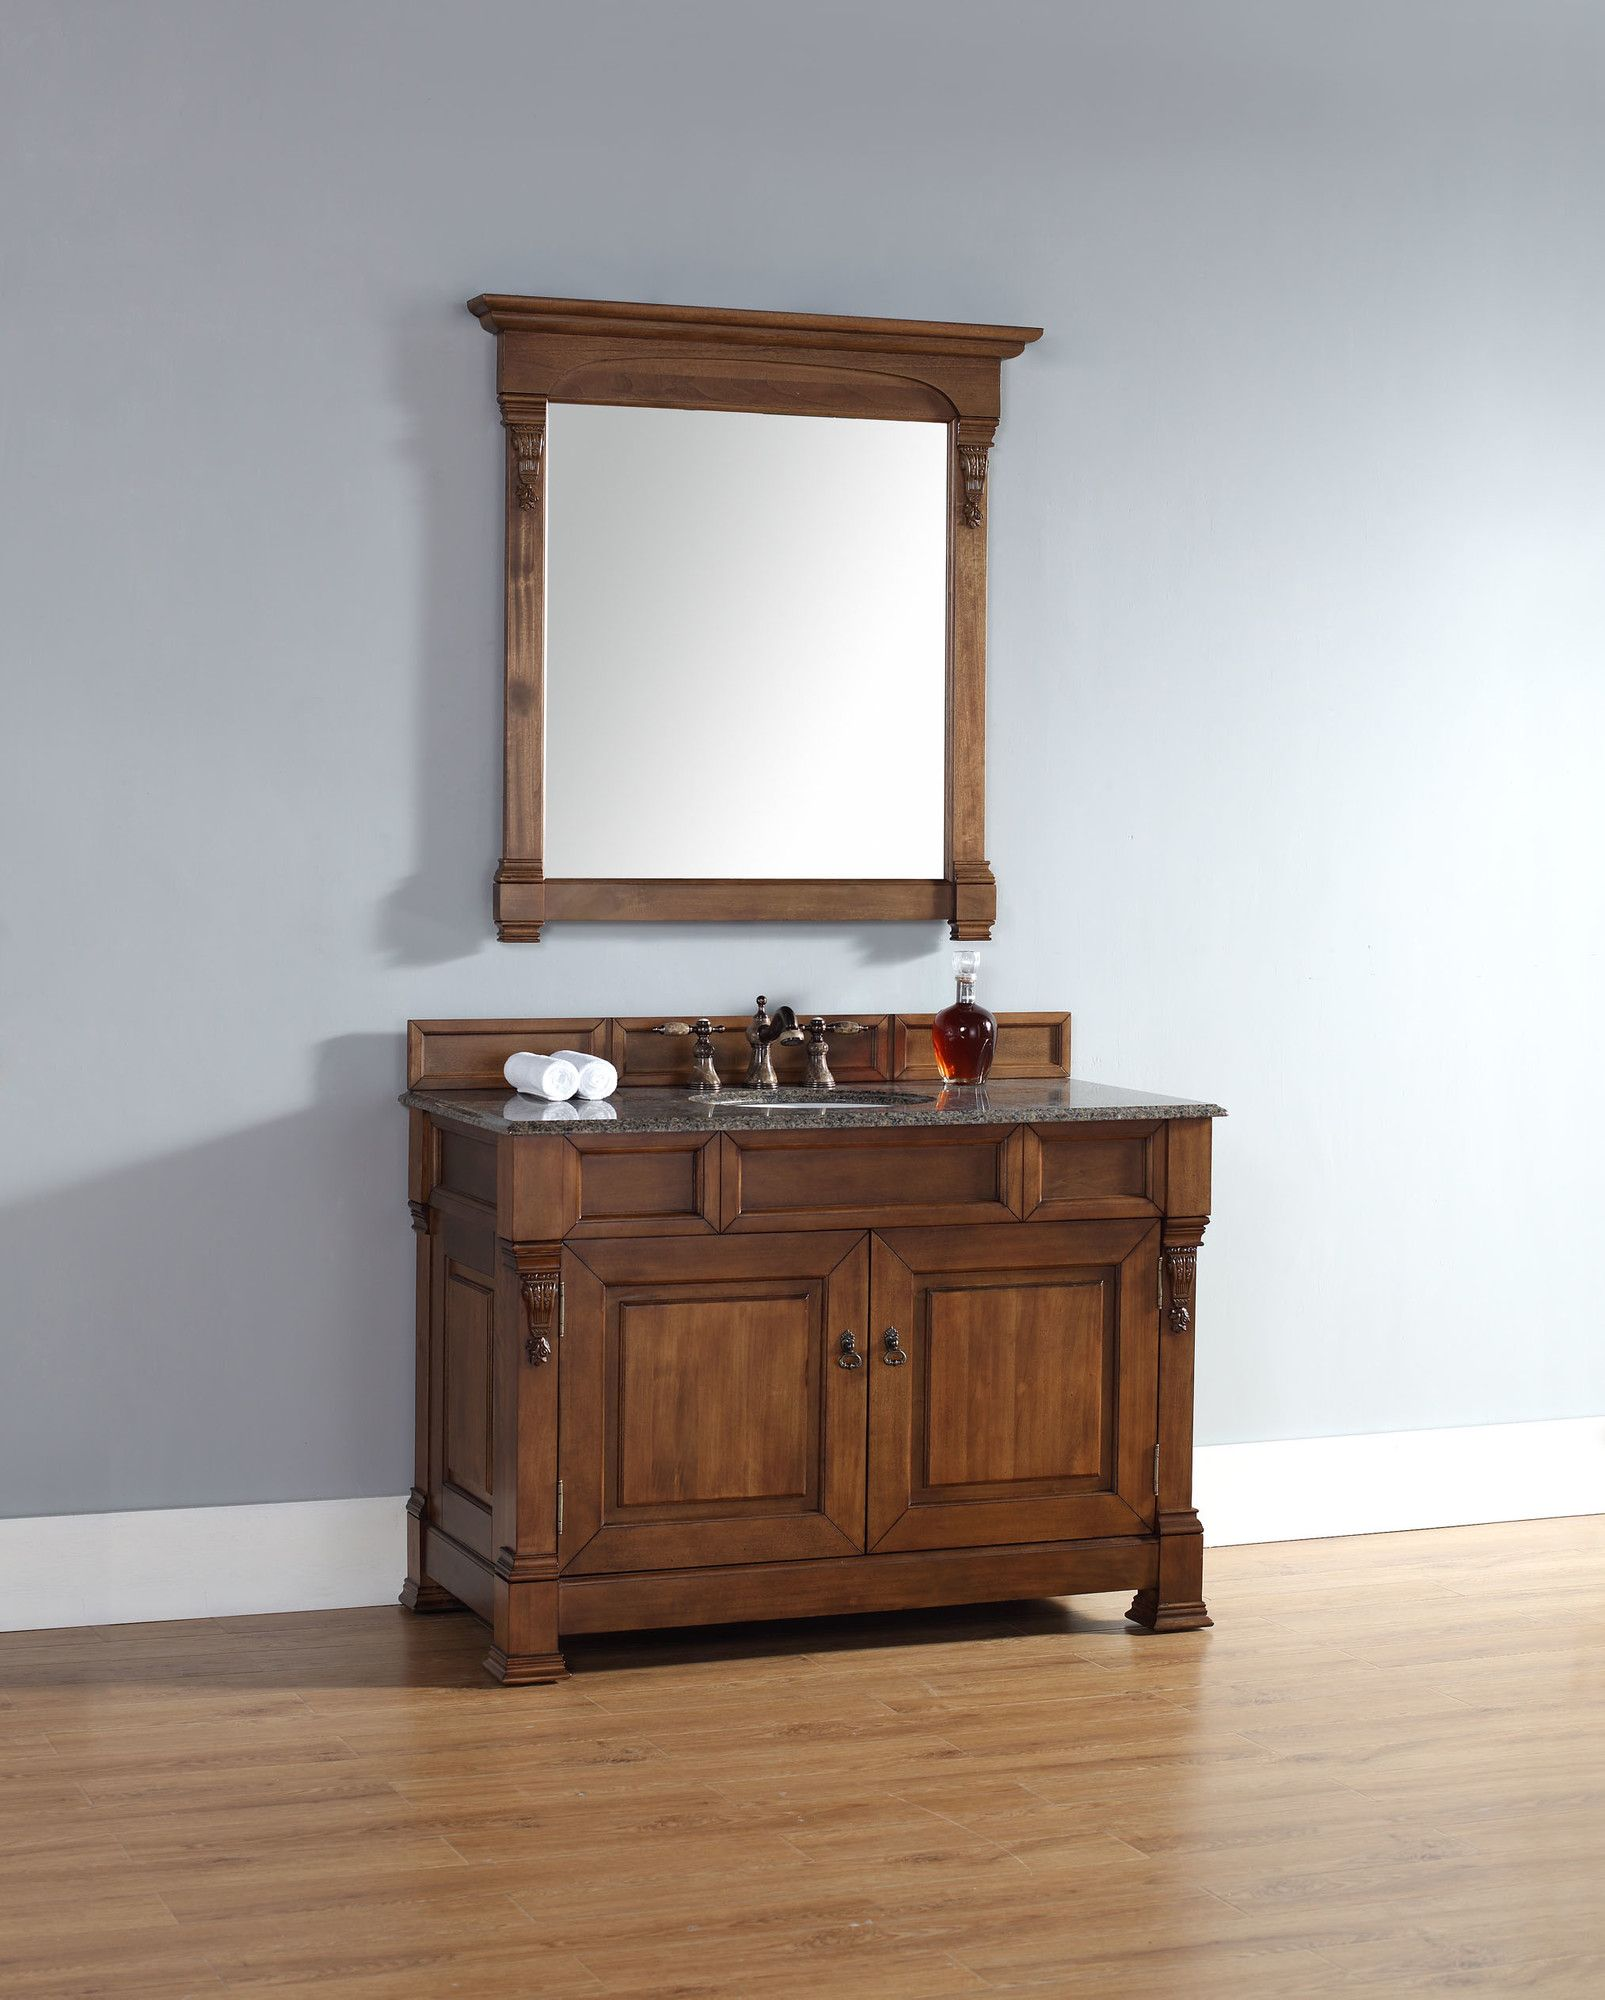 for decorating flowers vanity bathroom and fascinating furniture mirror granite with also countertop plus black round sink wall ideas vase wayfair